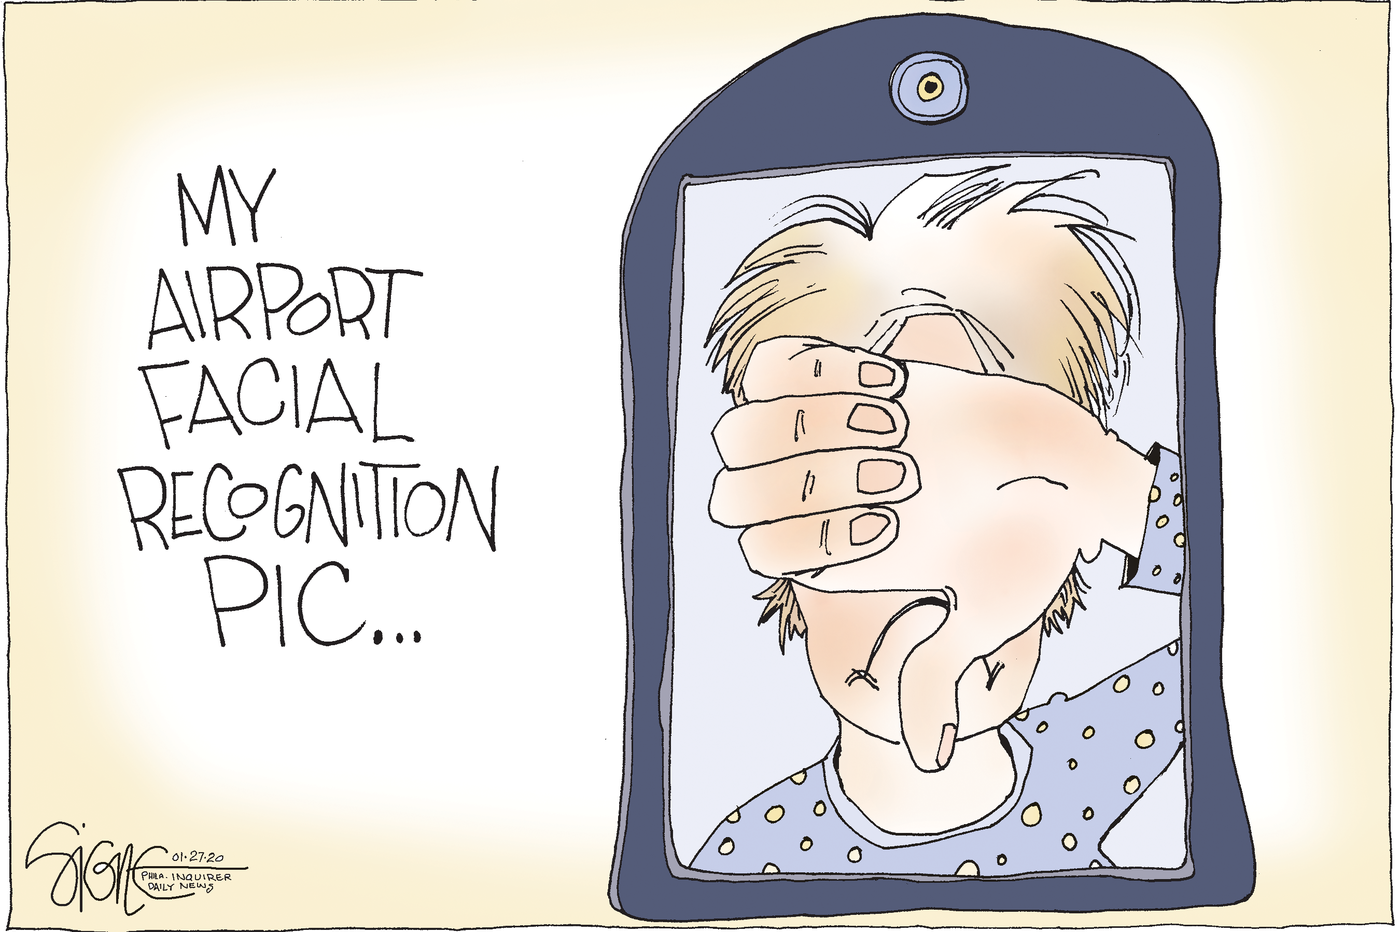 Political Cartoon: Facial recognition doesn't fly